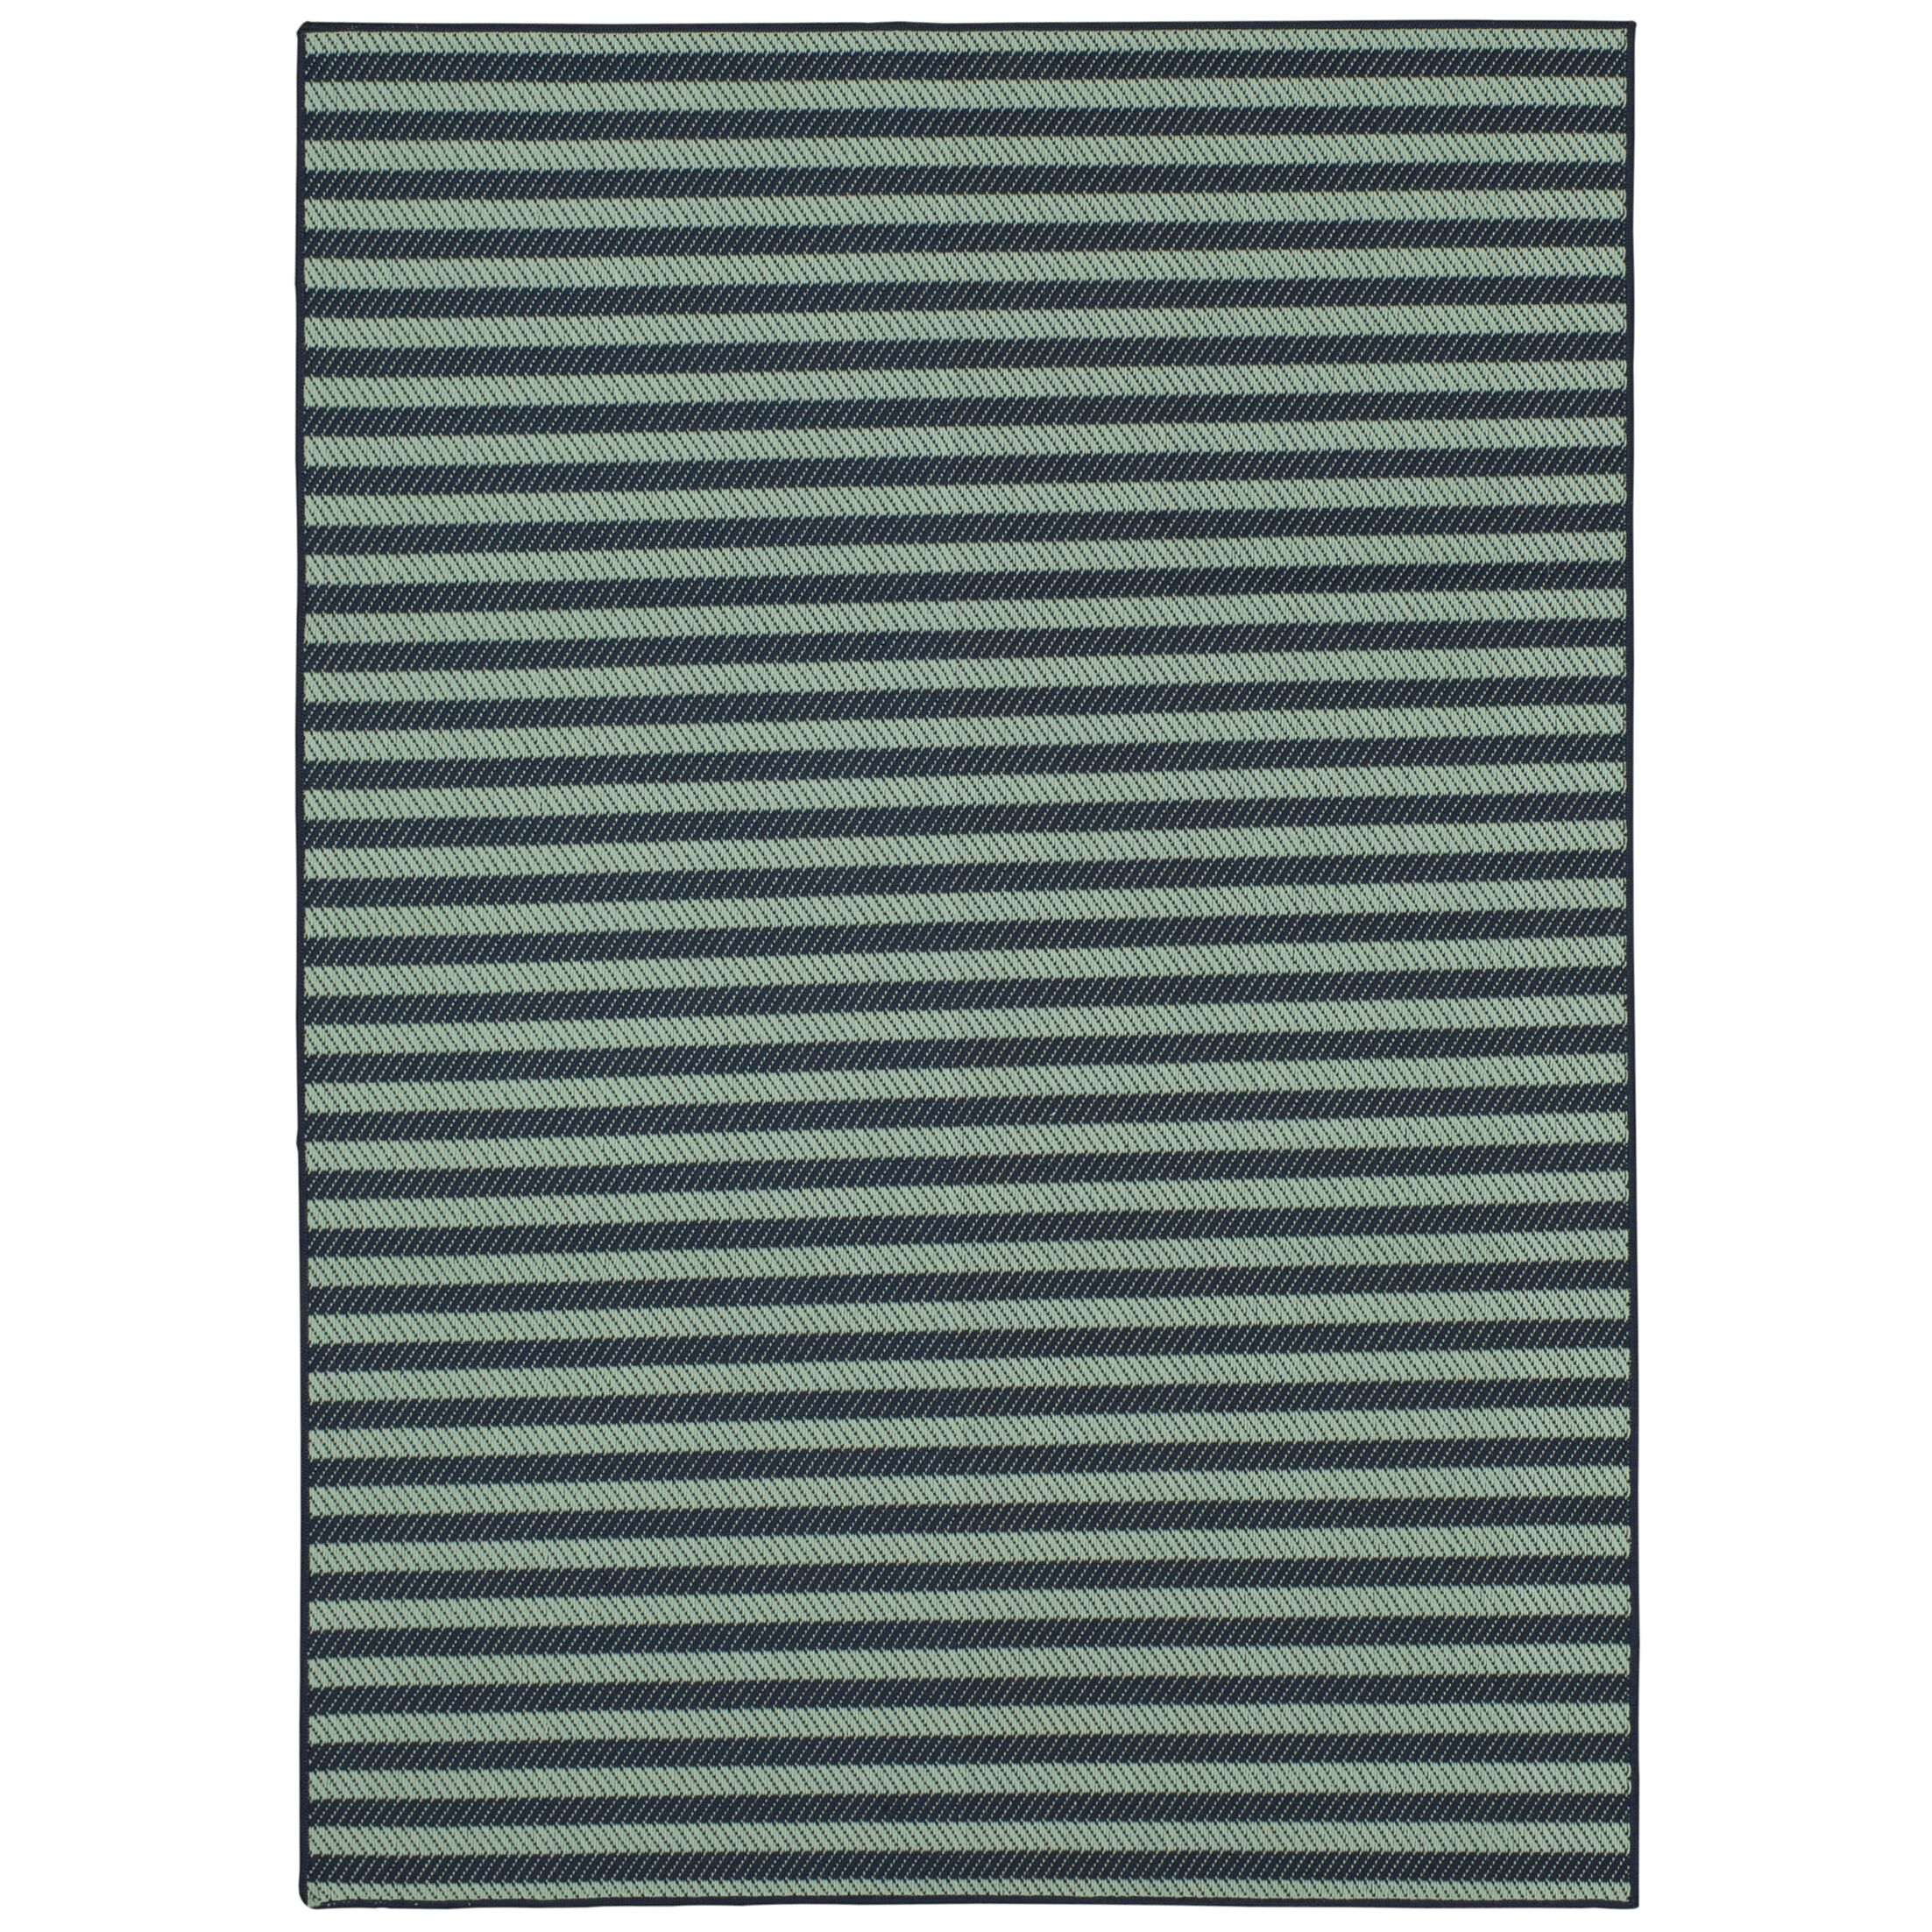 Kenison Indoor/Outdoor Aqua Area Rug Rug Size: Rectangle 9' x 12'